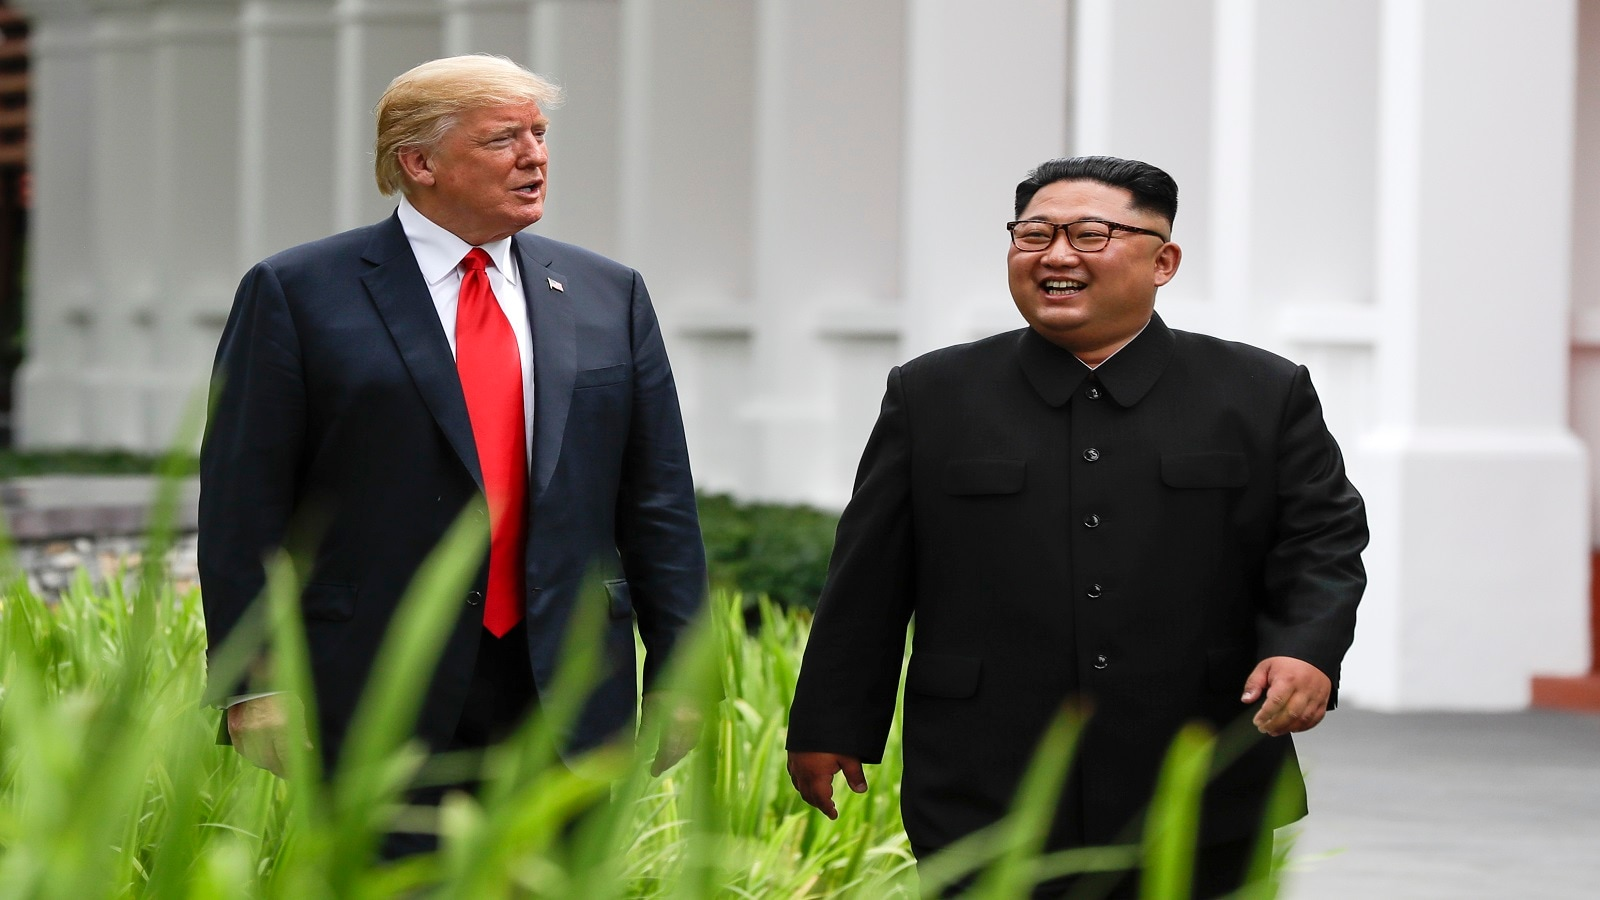 Trump and Kim walk from their lunch at the Capella resort on Sentosa Island. (AP Photo/Evan Vucci)